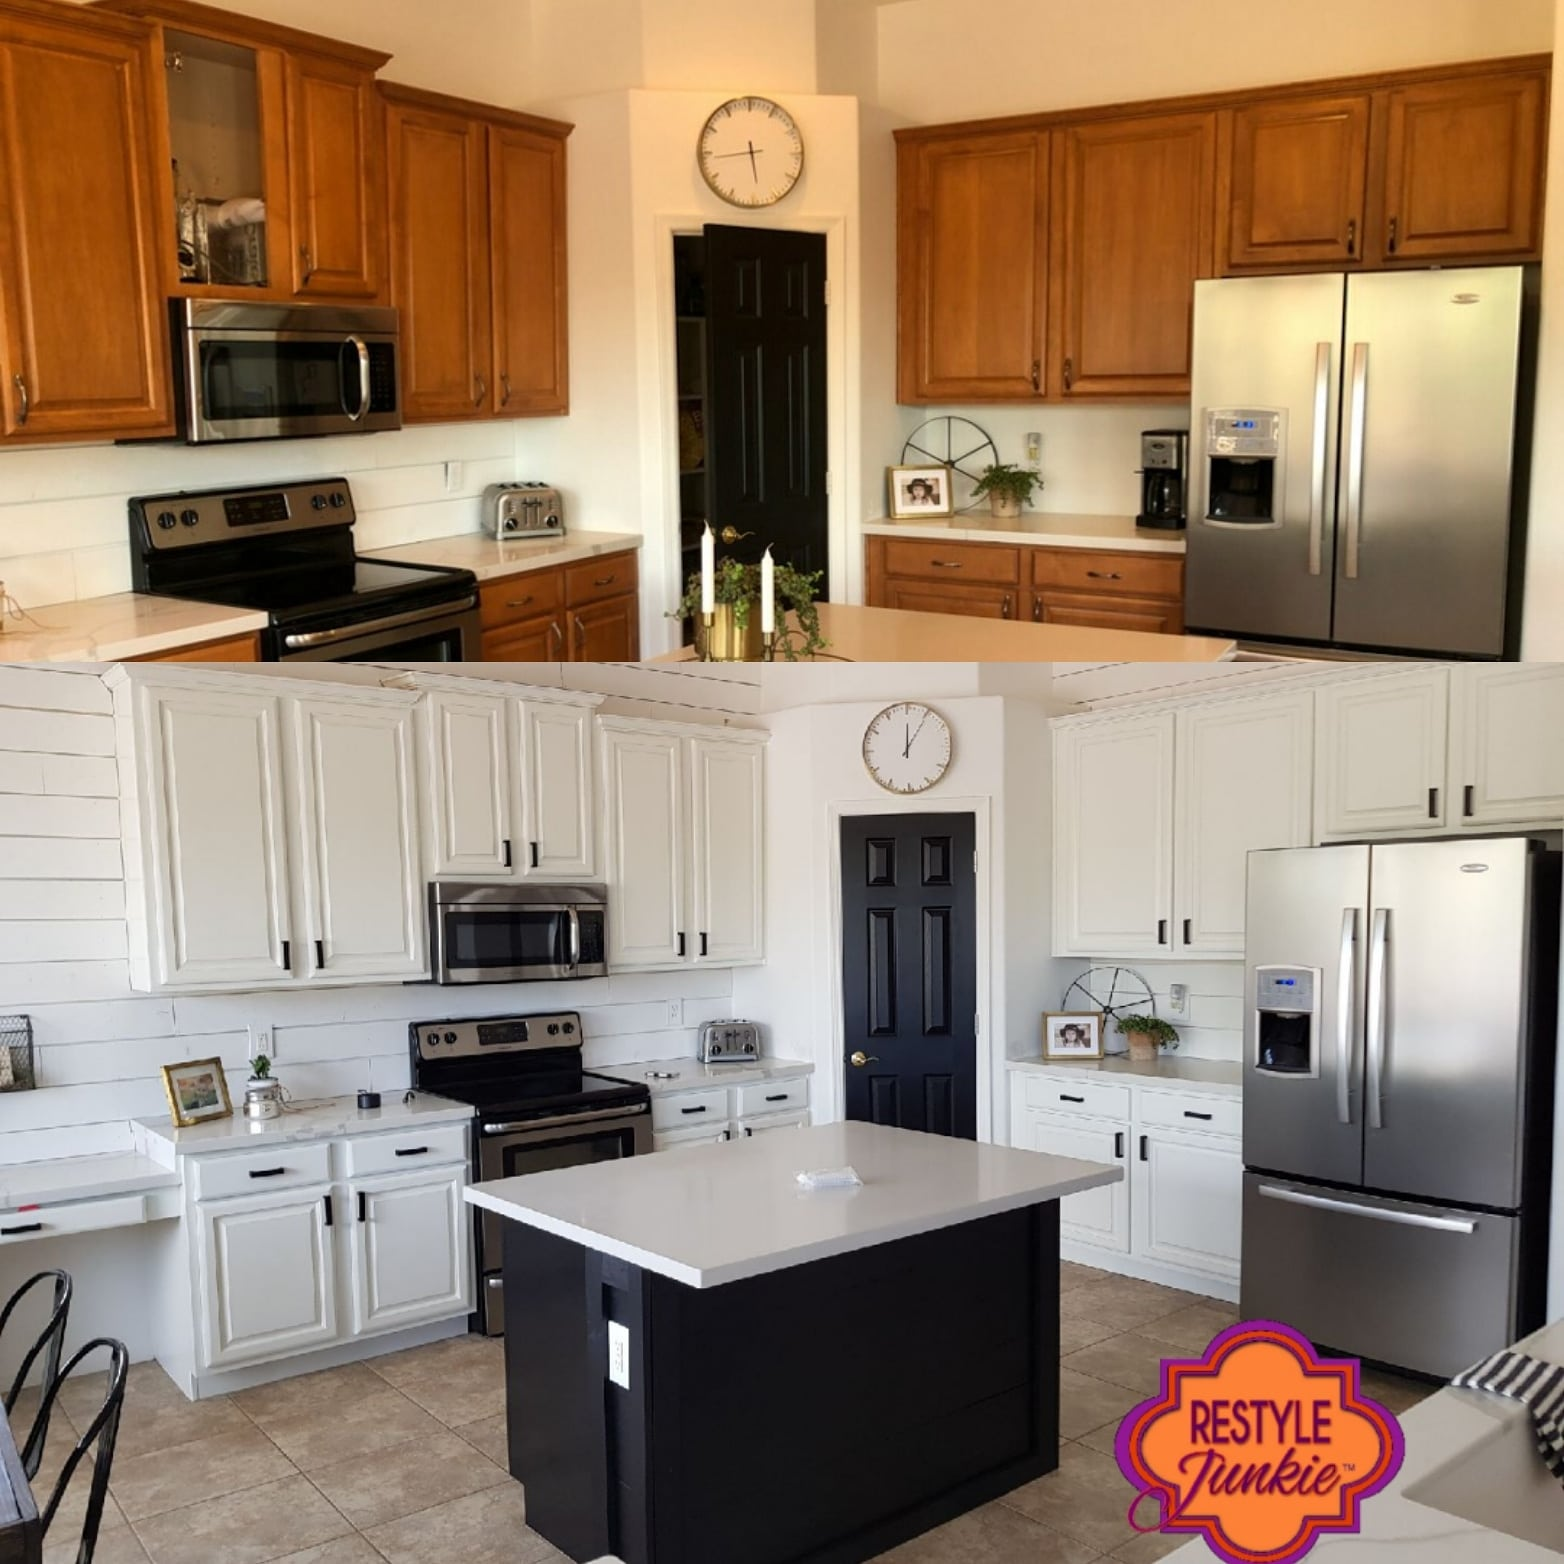 White Kitchen Cabinets Refinishing: Phoenix's #1 Cabinet Painting & Refinishing Services